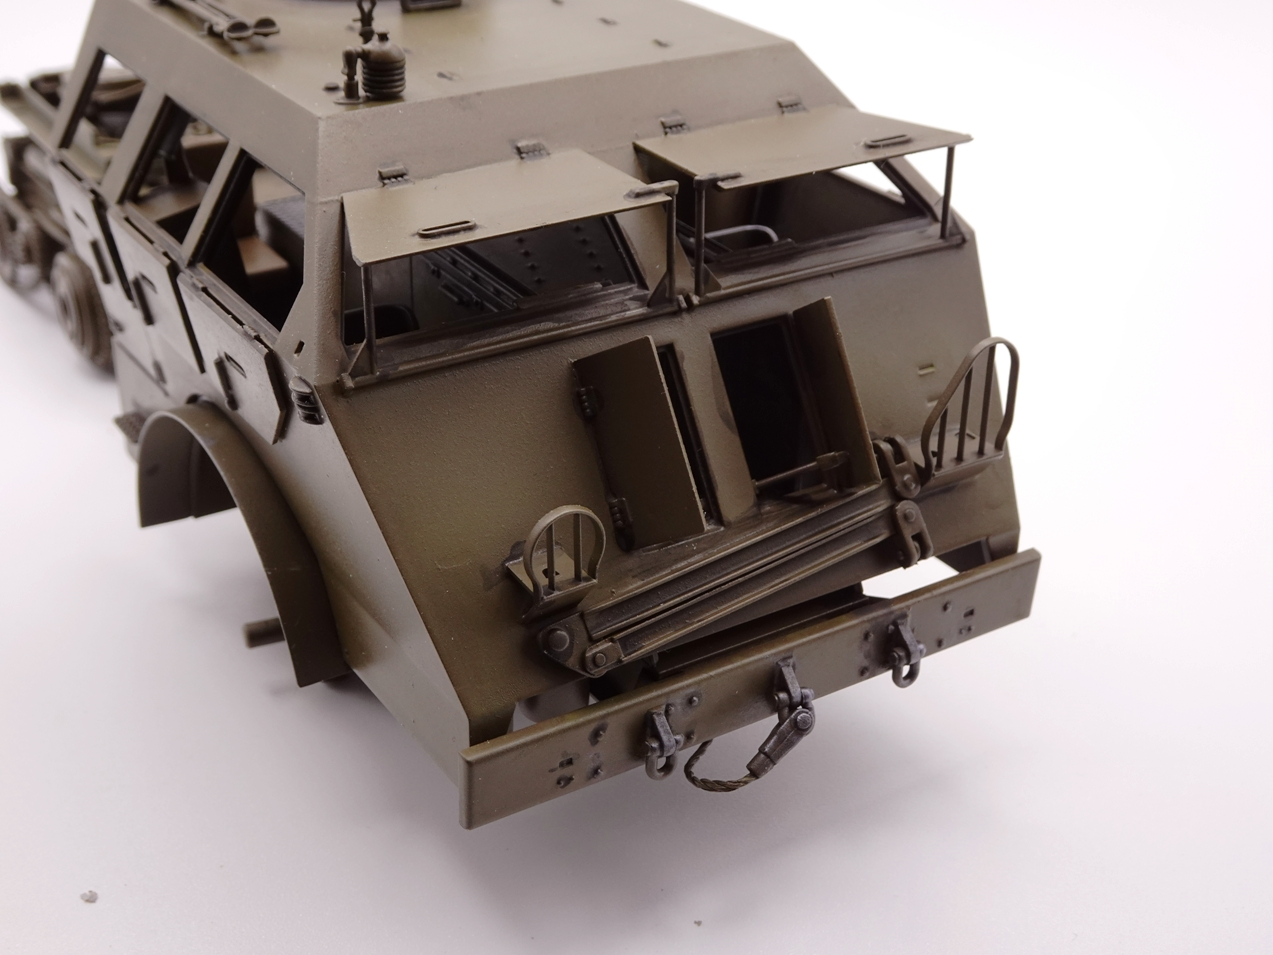 [Tamiya 1/35] M26 Armored tank recovery vehicle réf. 35244 - Page 2 M26-1110-10